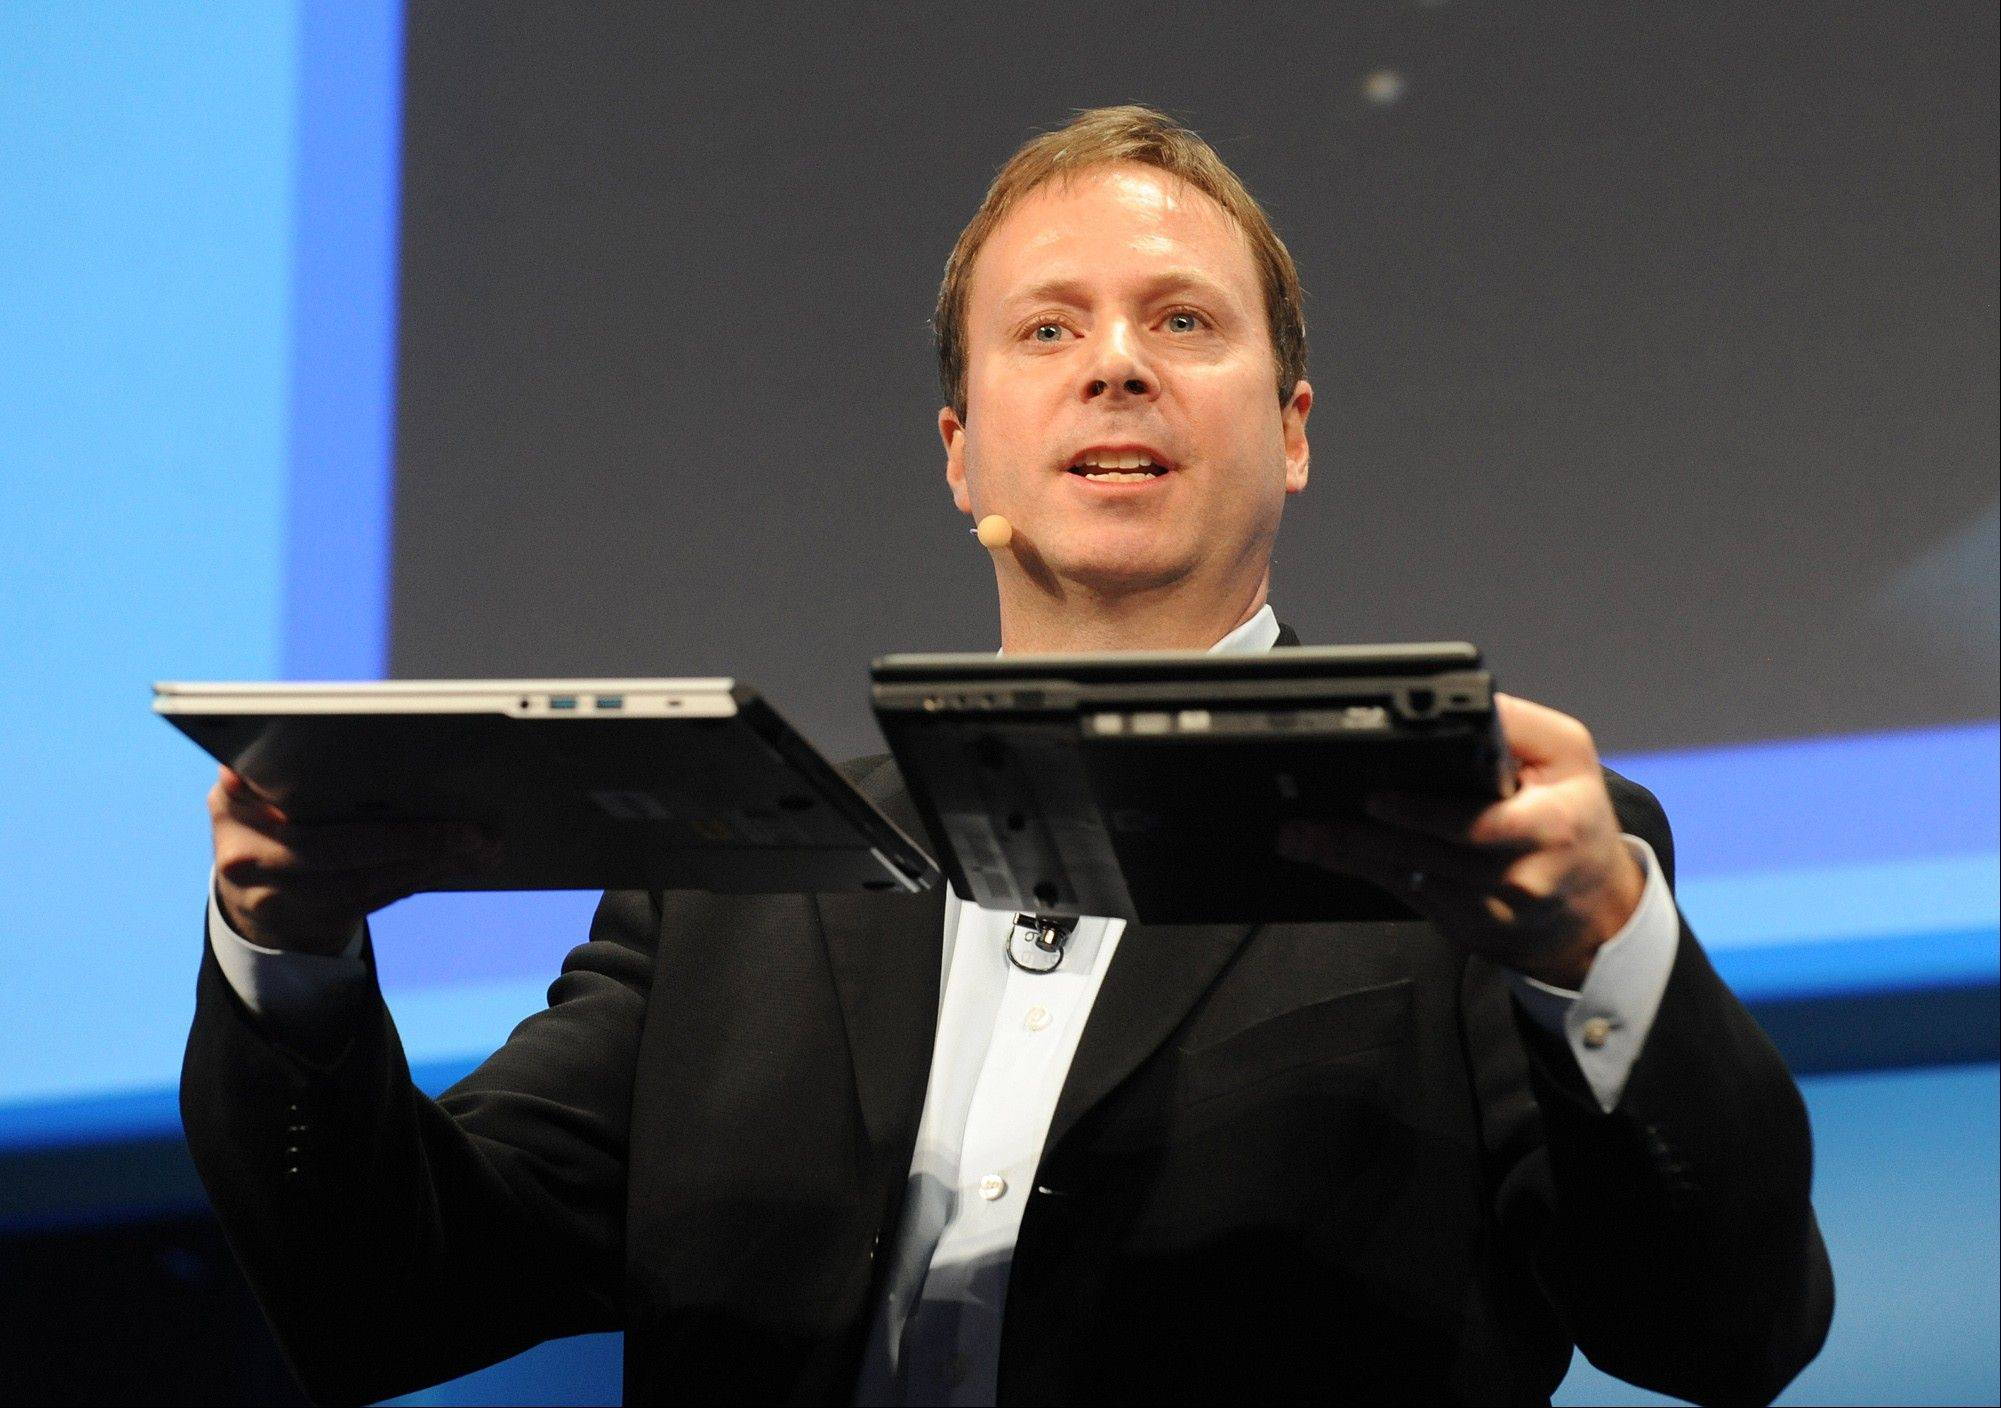 In this photo provided by Intel, Kirk Skaugen, vice president and general manager of Intel�s PC Client Group shows off the new Ultrabook, left, next to an average 3-year-old laptop, at Intel�s media briefing prior to opening of Consumer Electronic Show.